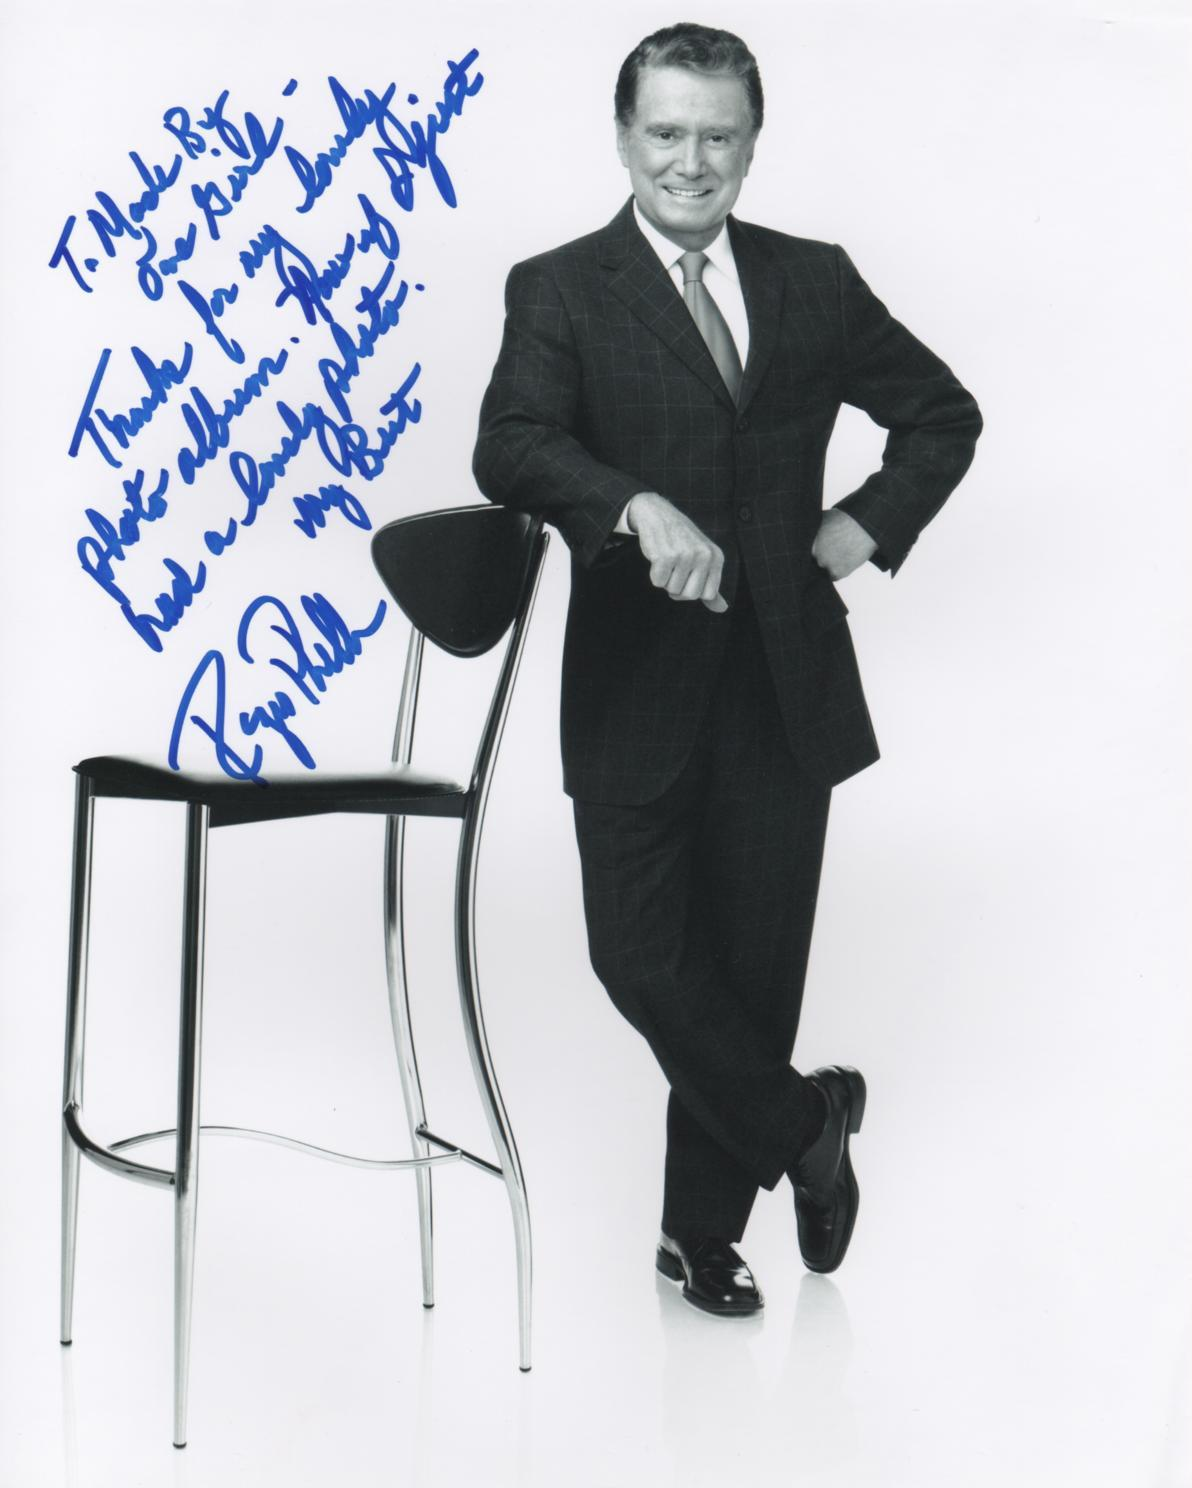 personal note from Regis Philbin after the pre-Oscar party gift baskets where he received one of my hand made scrapbooks!